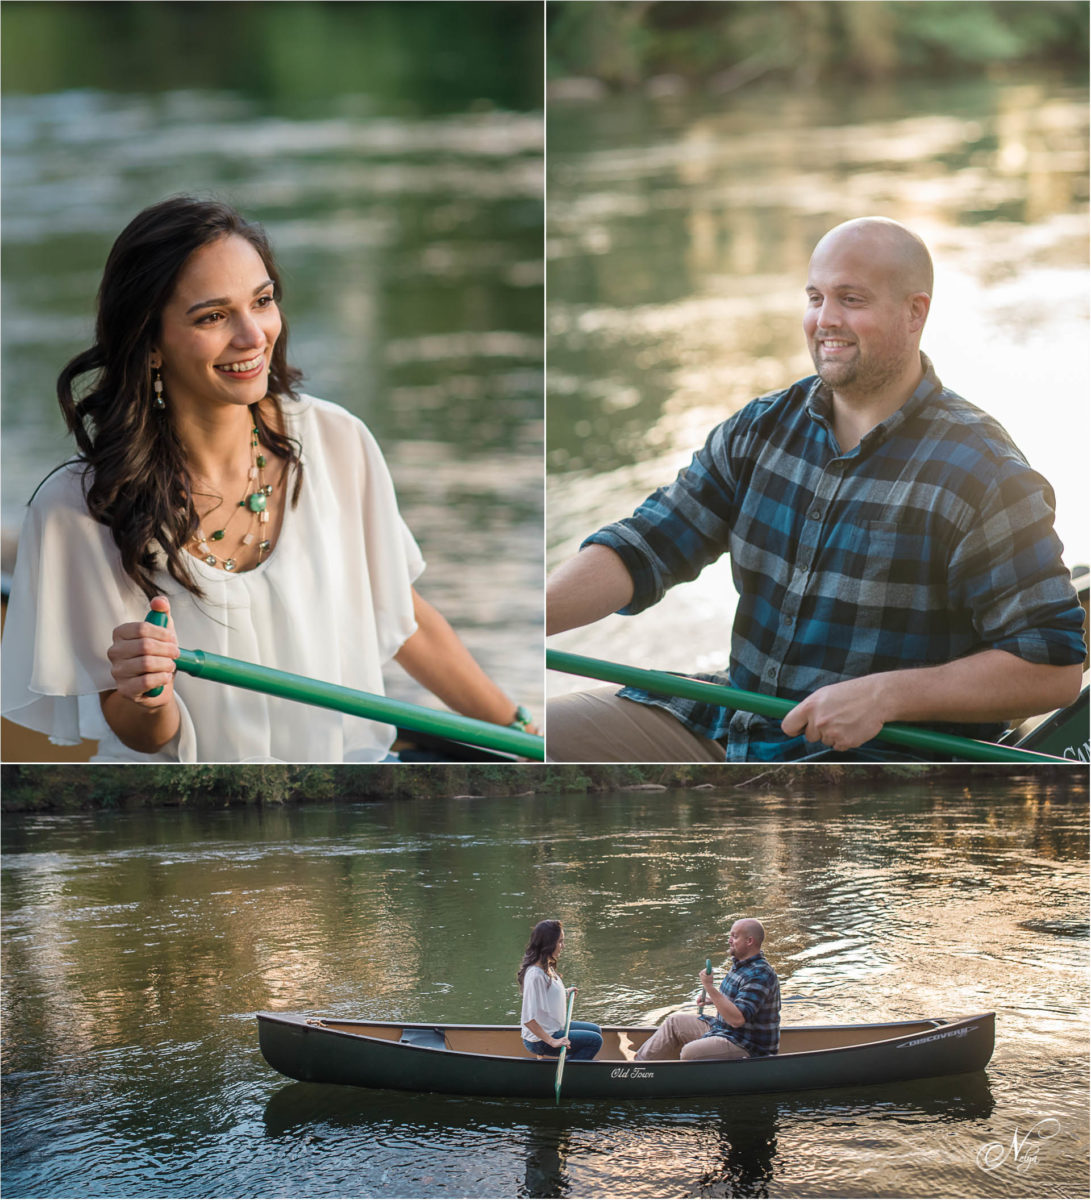 couple in old town canoe in front of Hiwassee River Weddings wedding venue